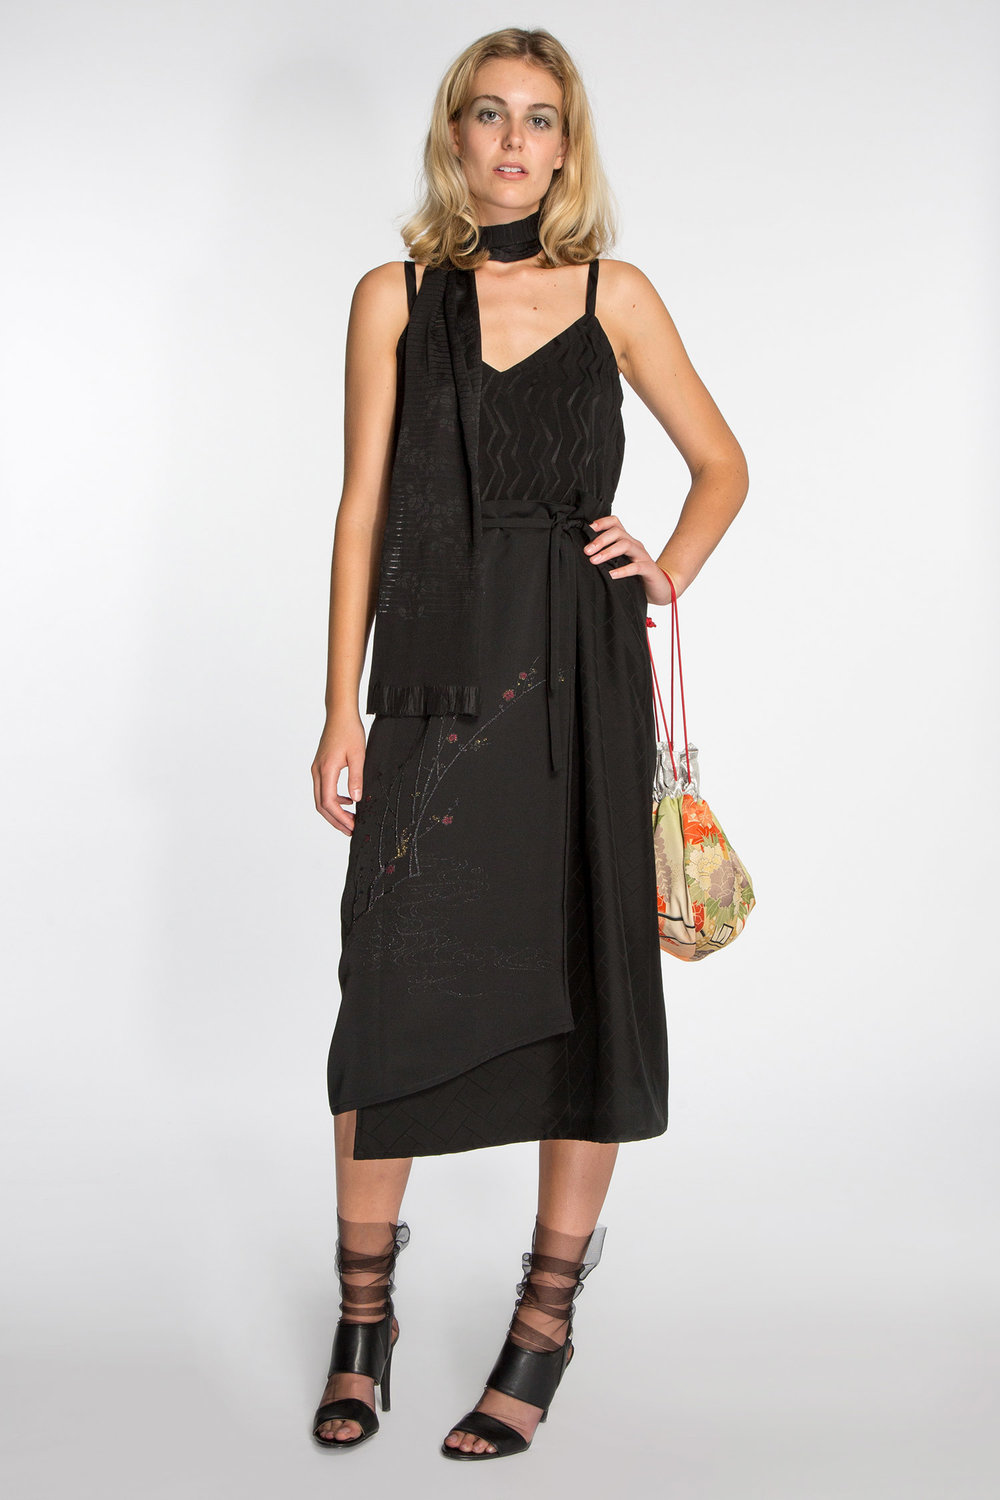 Look5-camisole-wrap-skirt-8-28.jpg